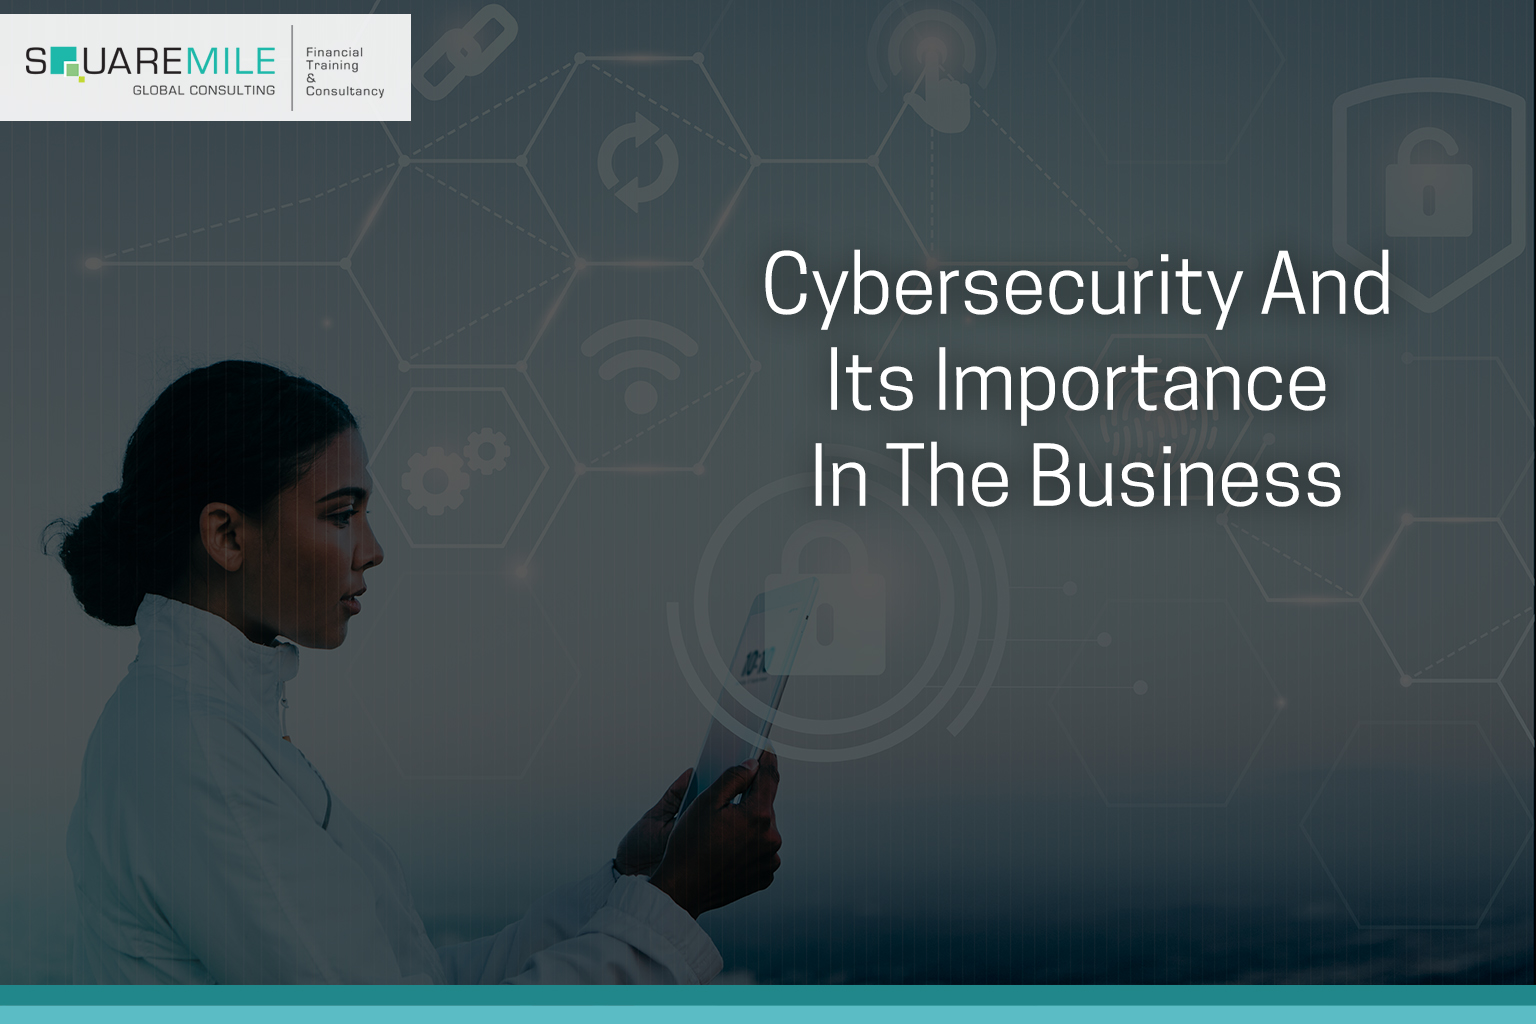 Cybersecurity and its importance in the business